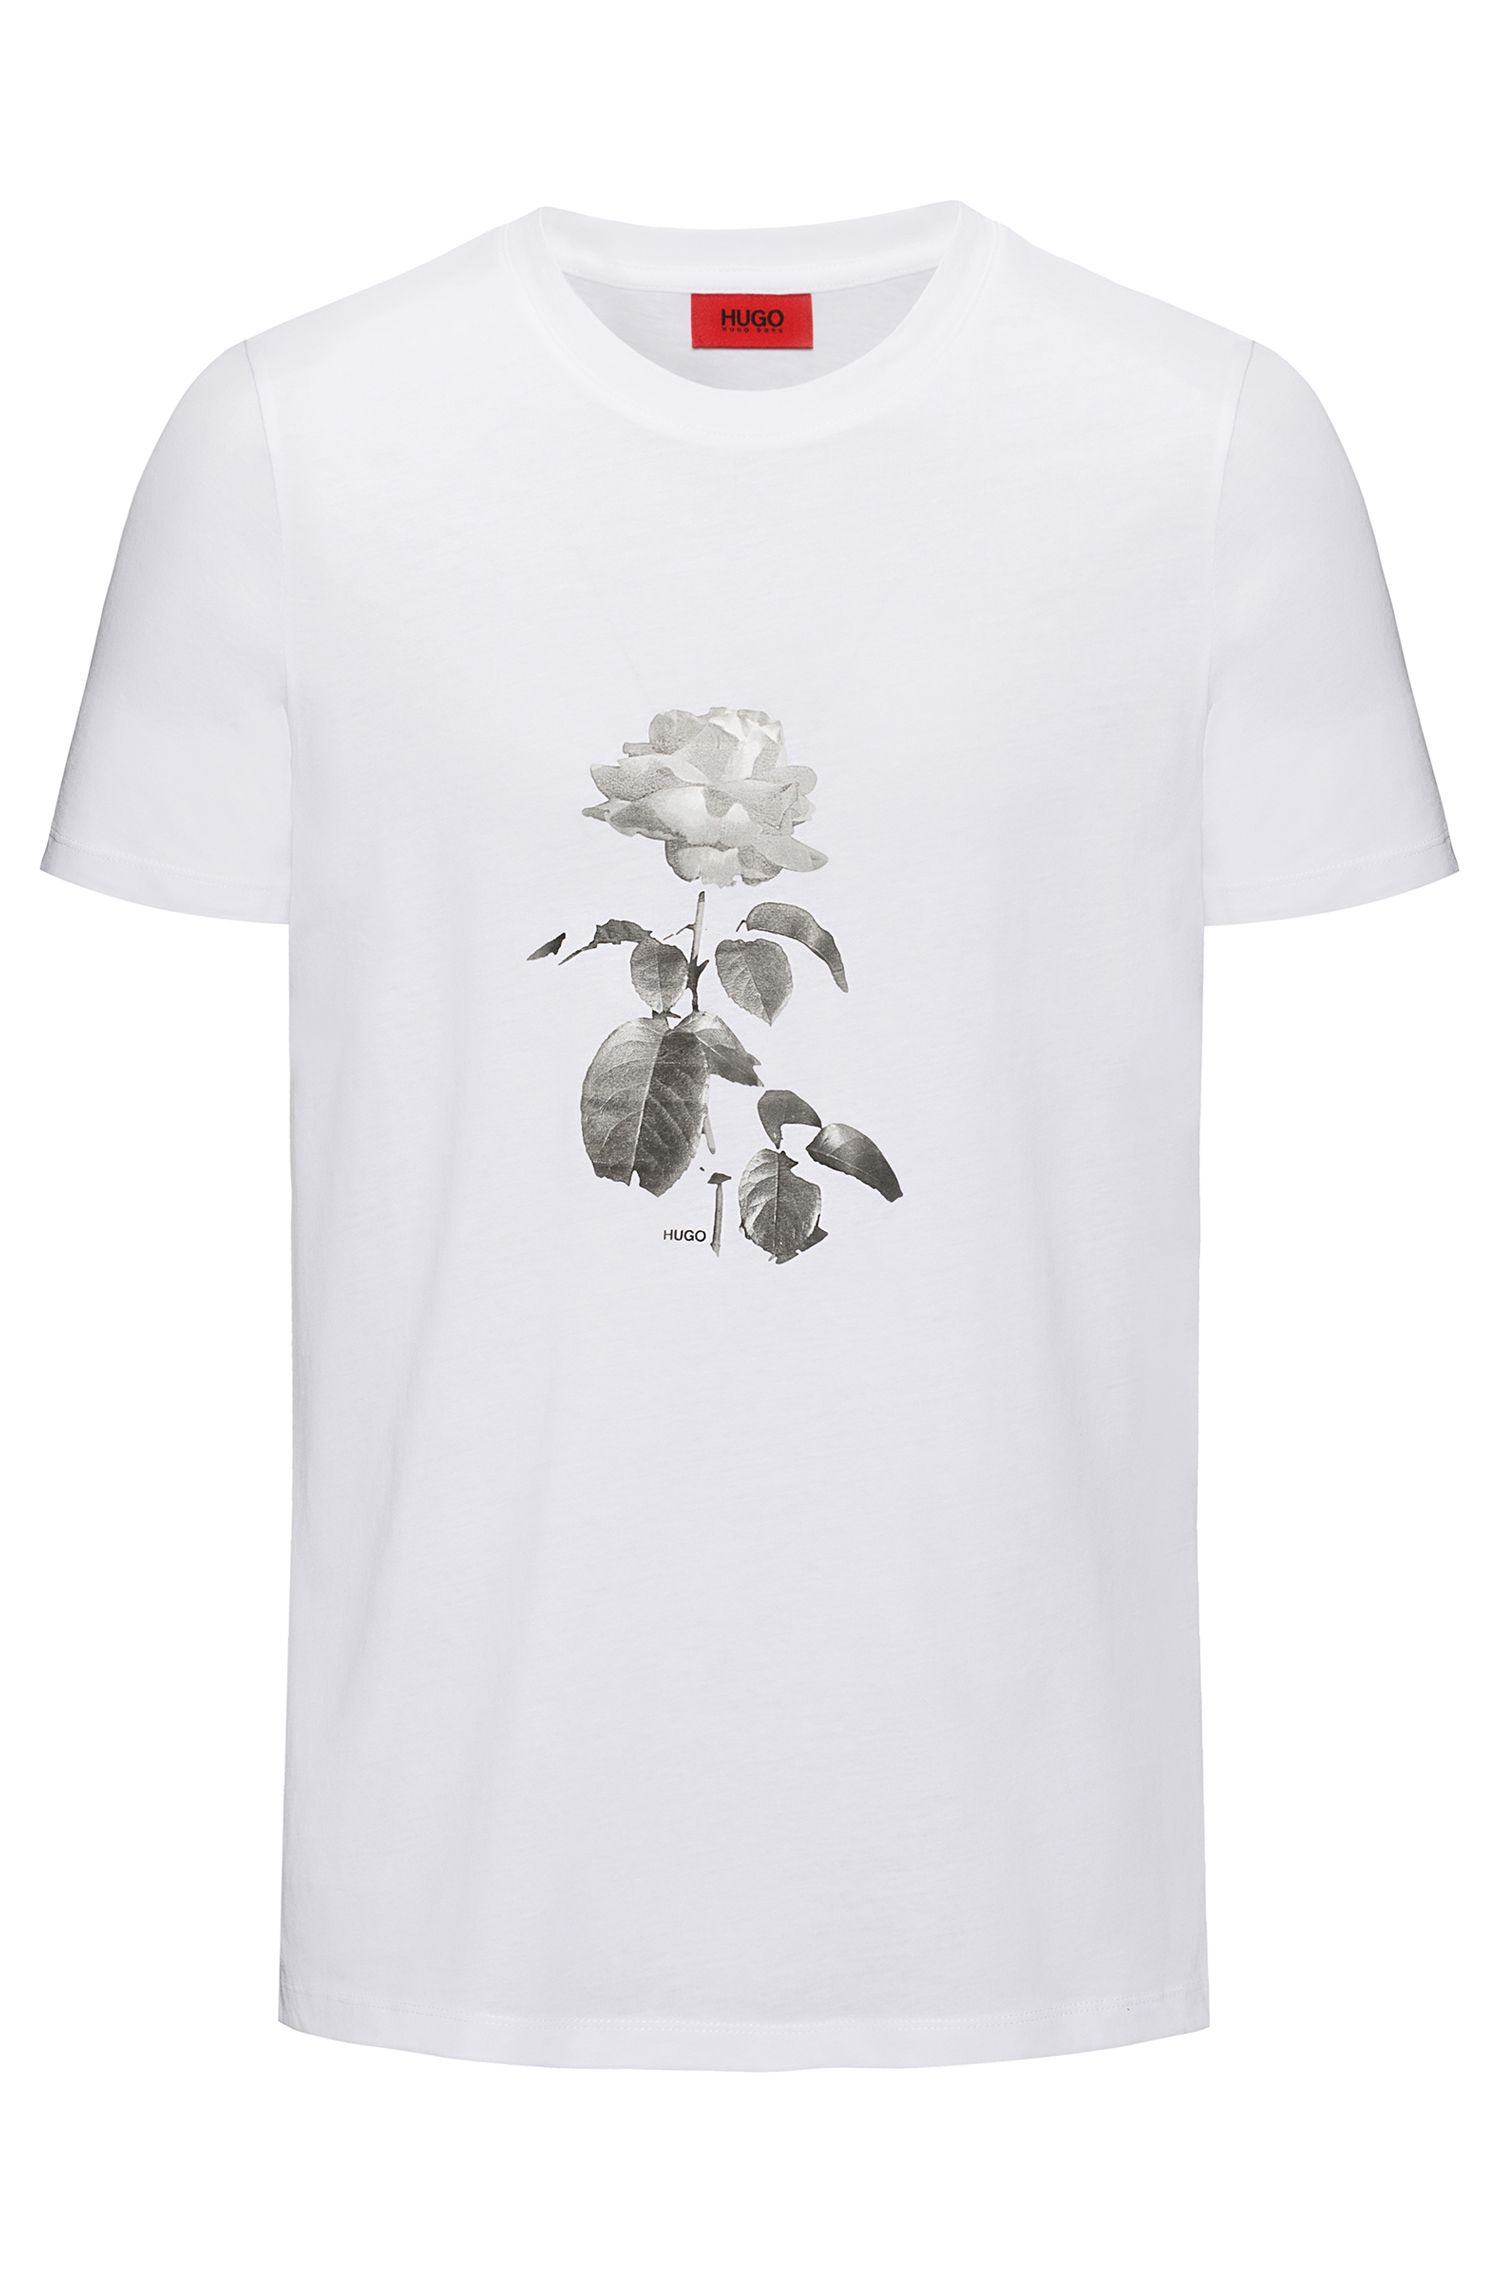 Cotton Graphic T-Shirt | Drose, White